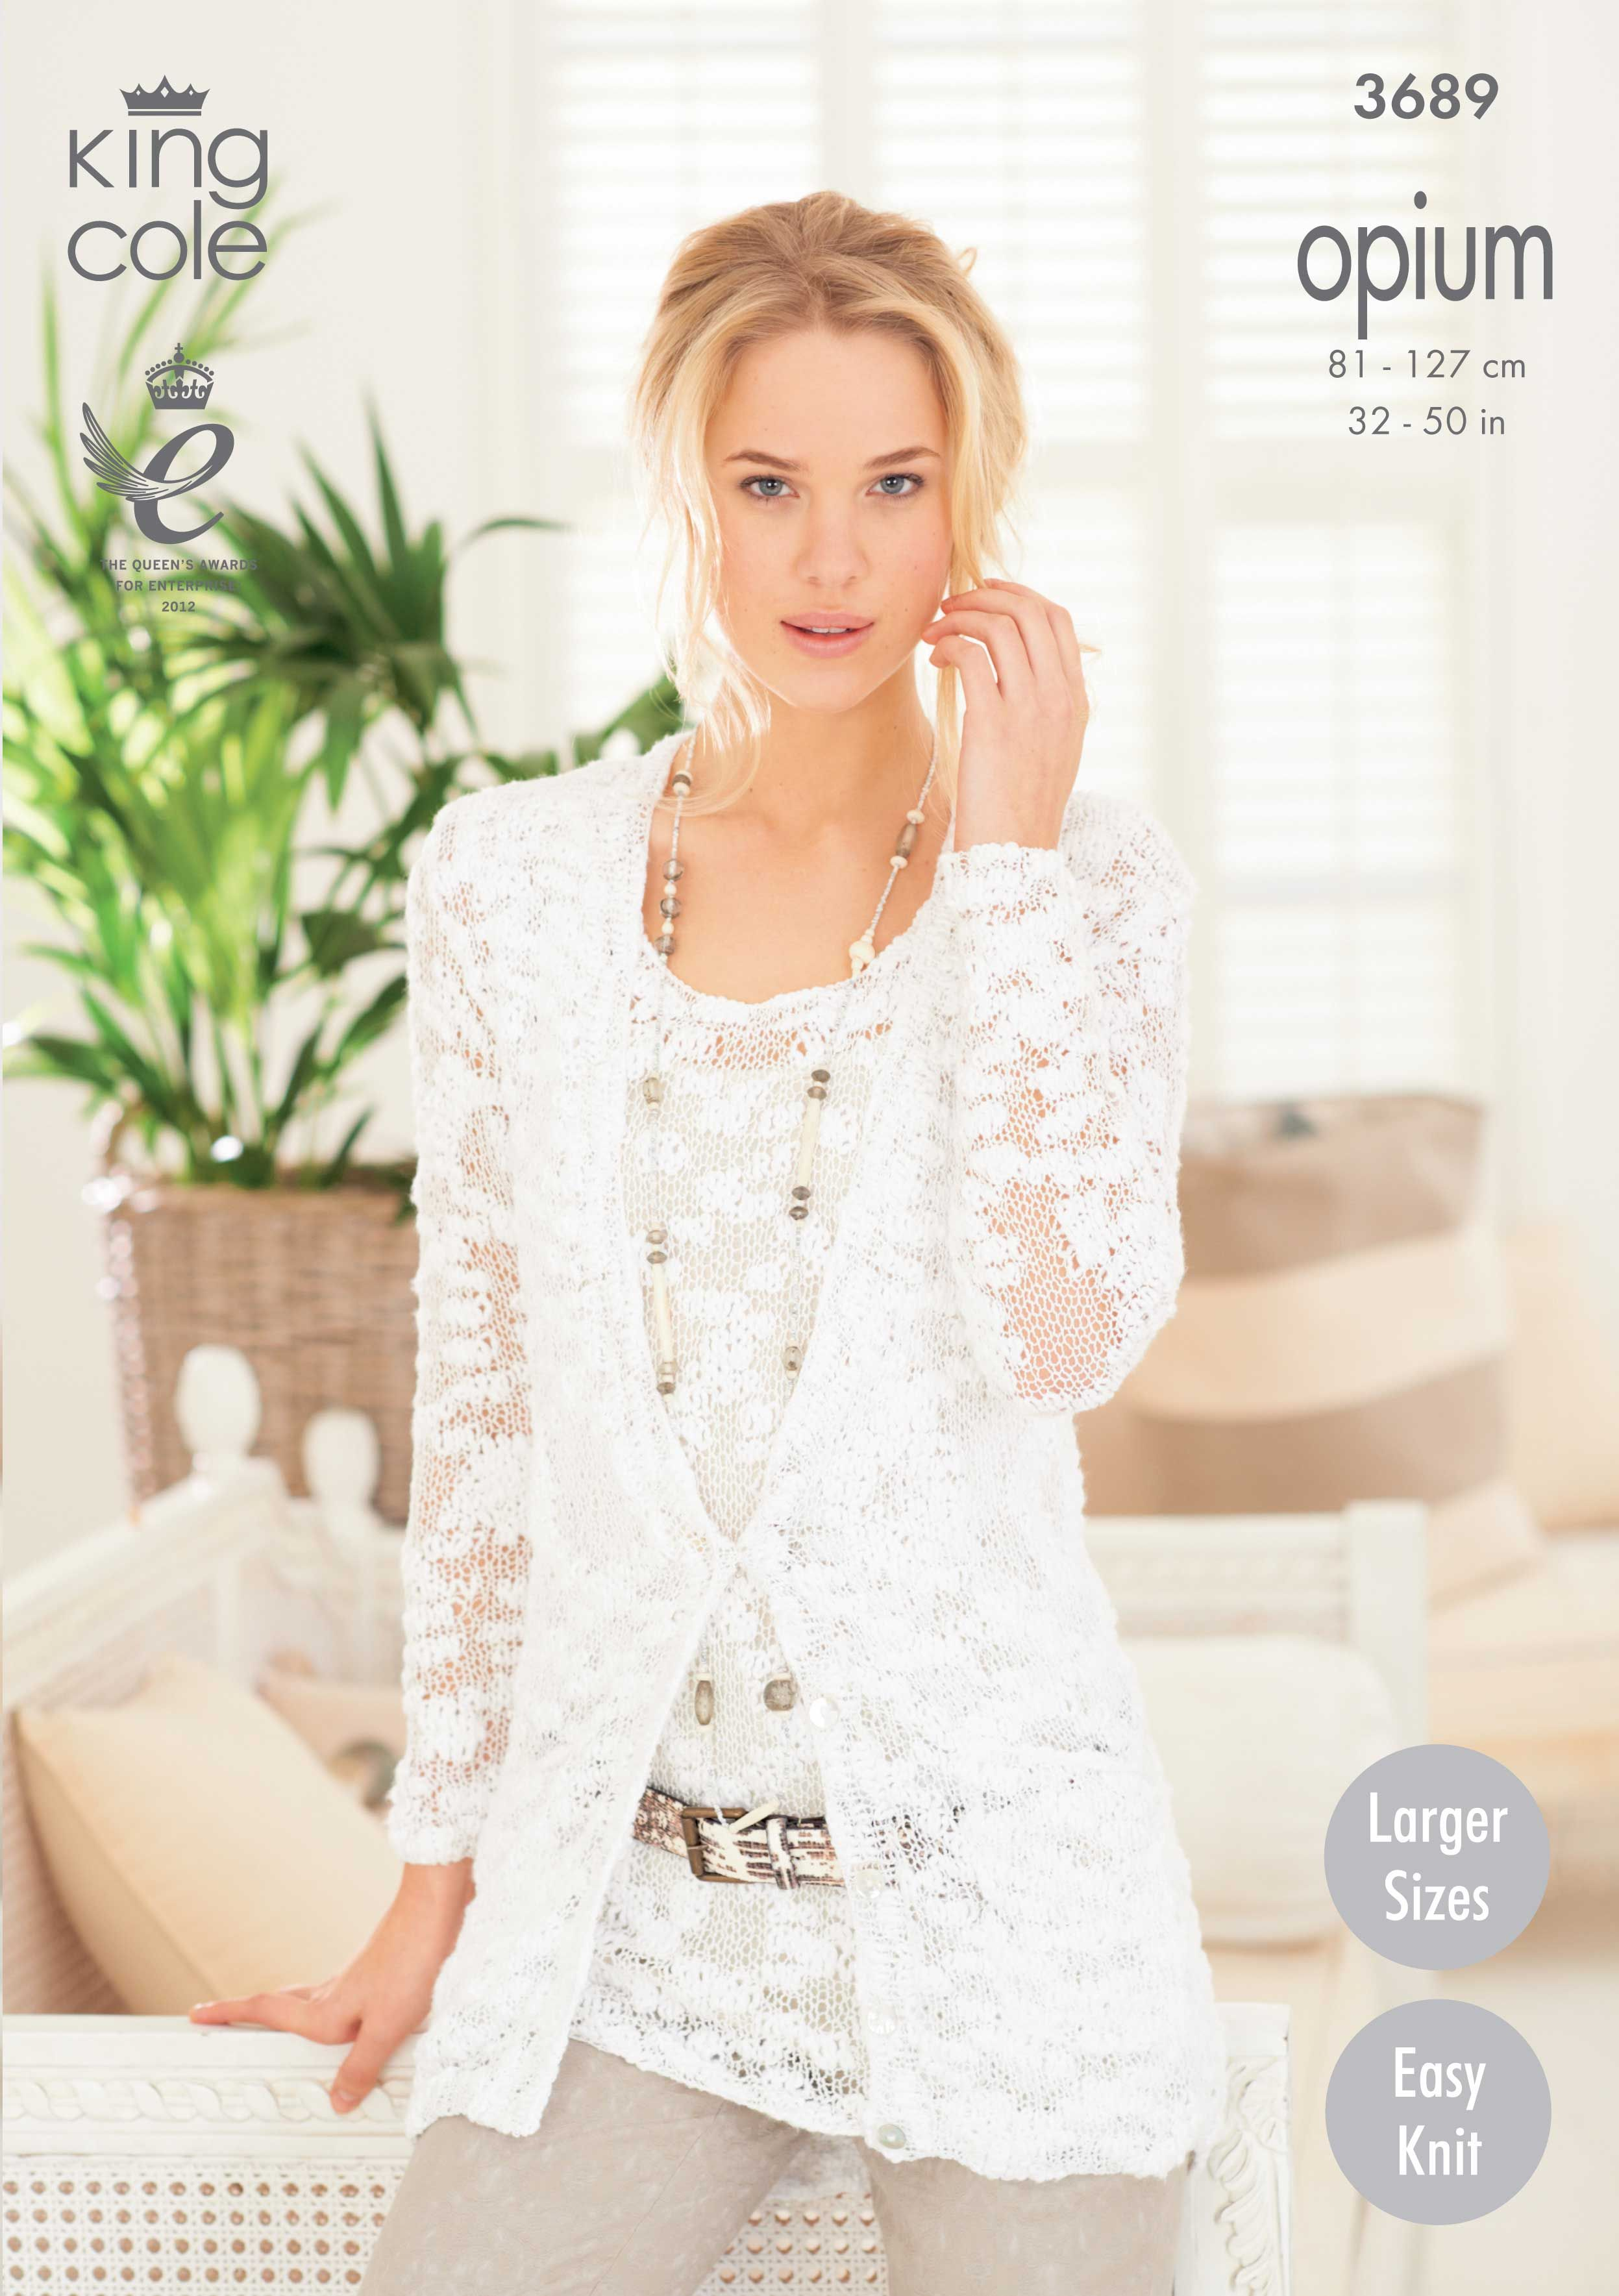 Knittes Ladies' Cardigan and Vest with a Lacy Look - King Cole ...